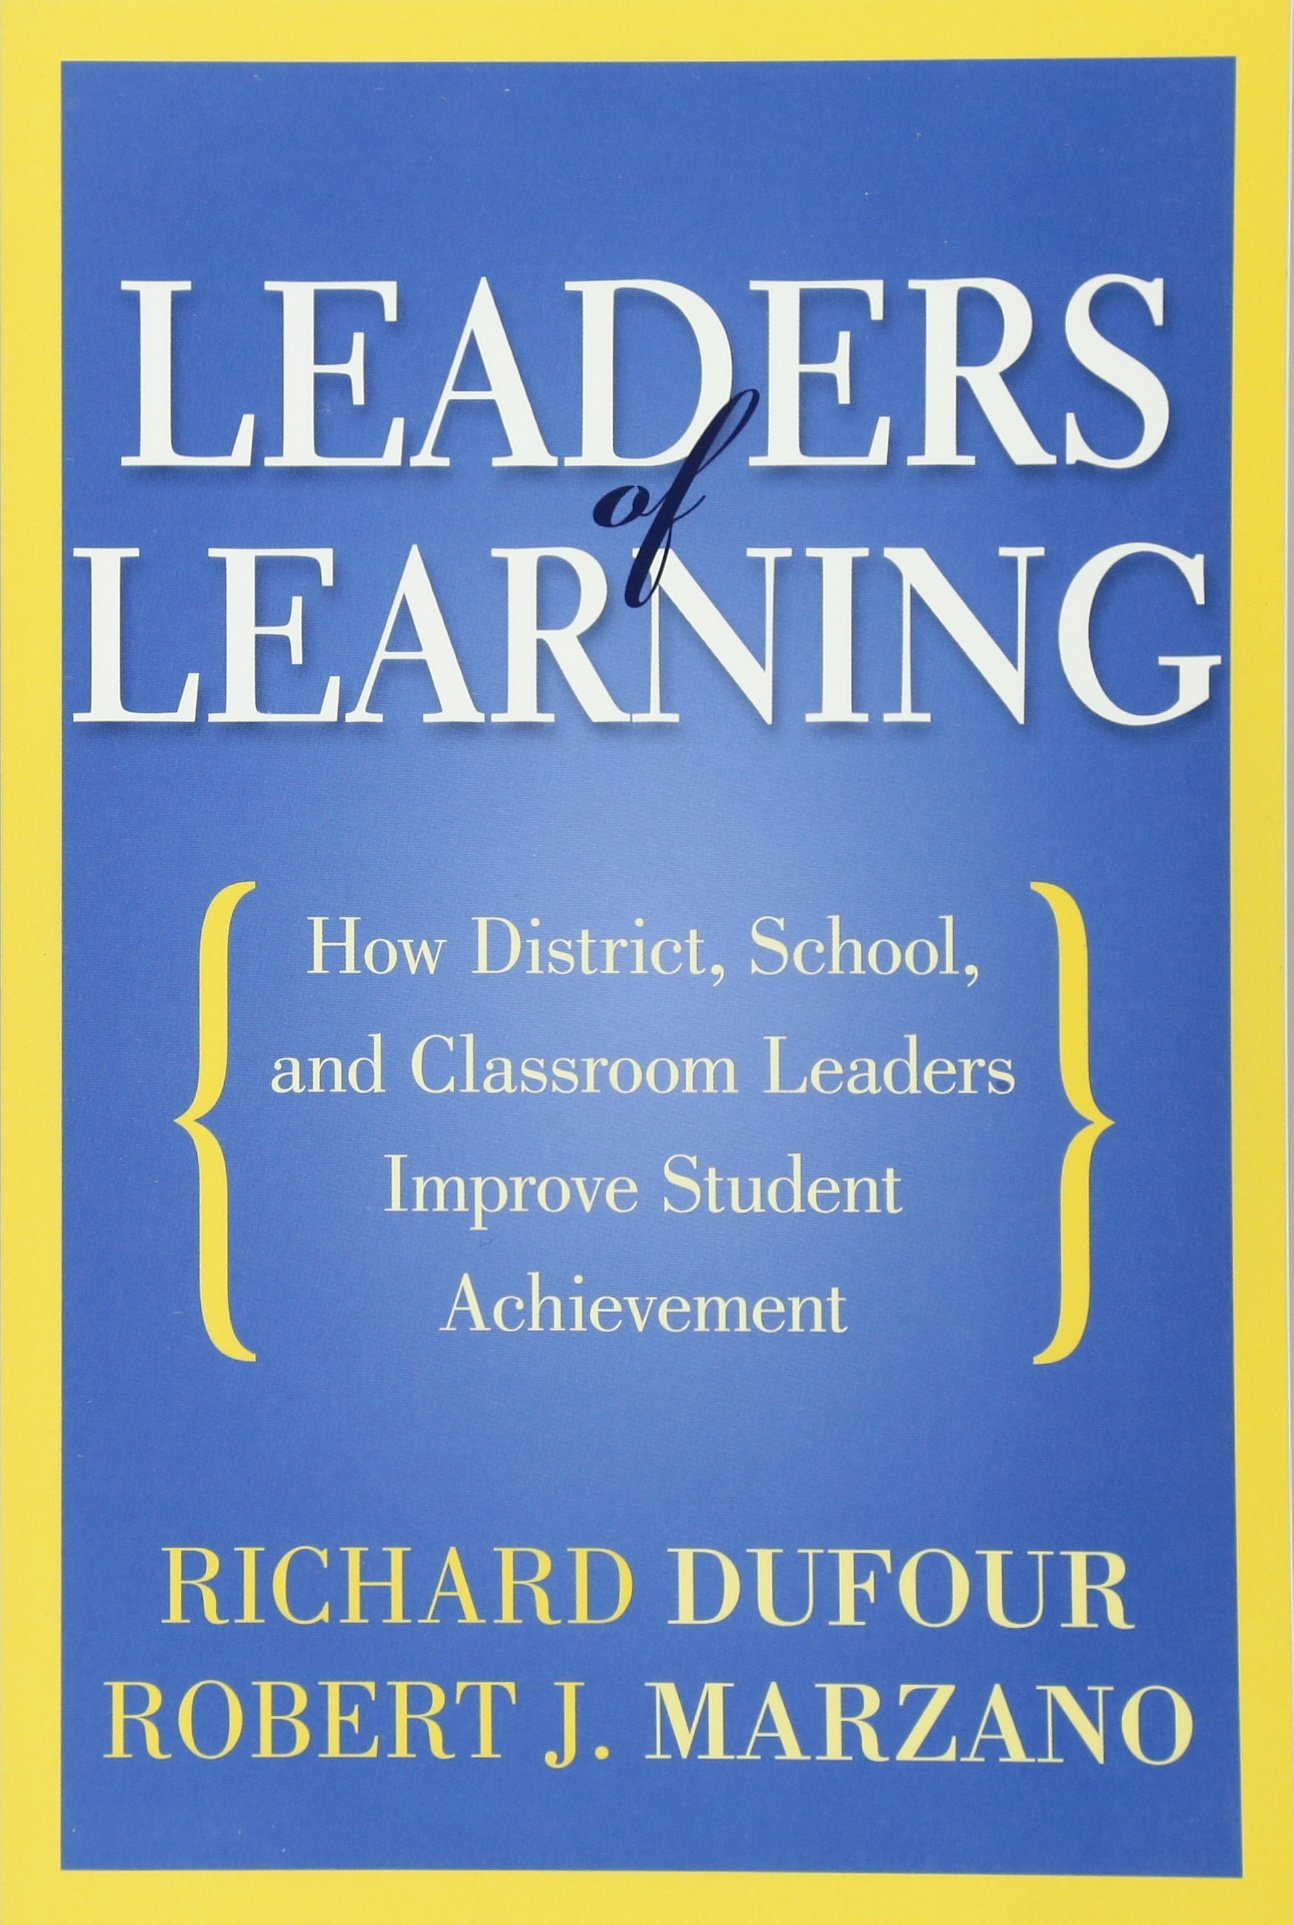 Leaders of Learning: How District, School, and Classroom Leaders Improve Student Achievement Perfect Paperback – Jun 25 2011 Richard DuFour Robert Marzano Solution Tree 1935542664